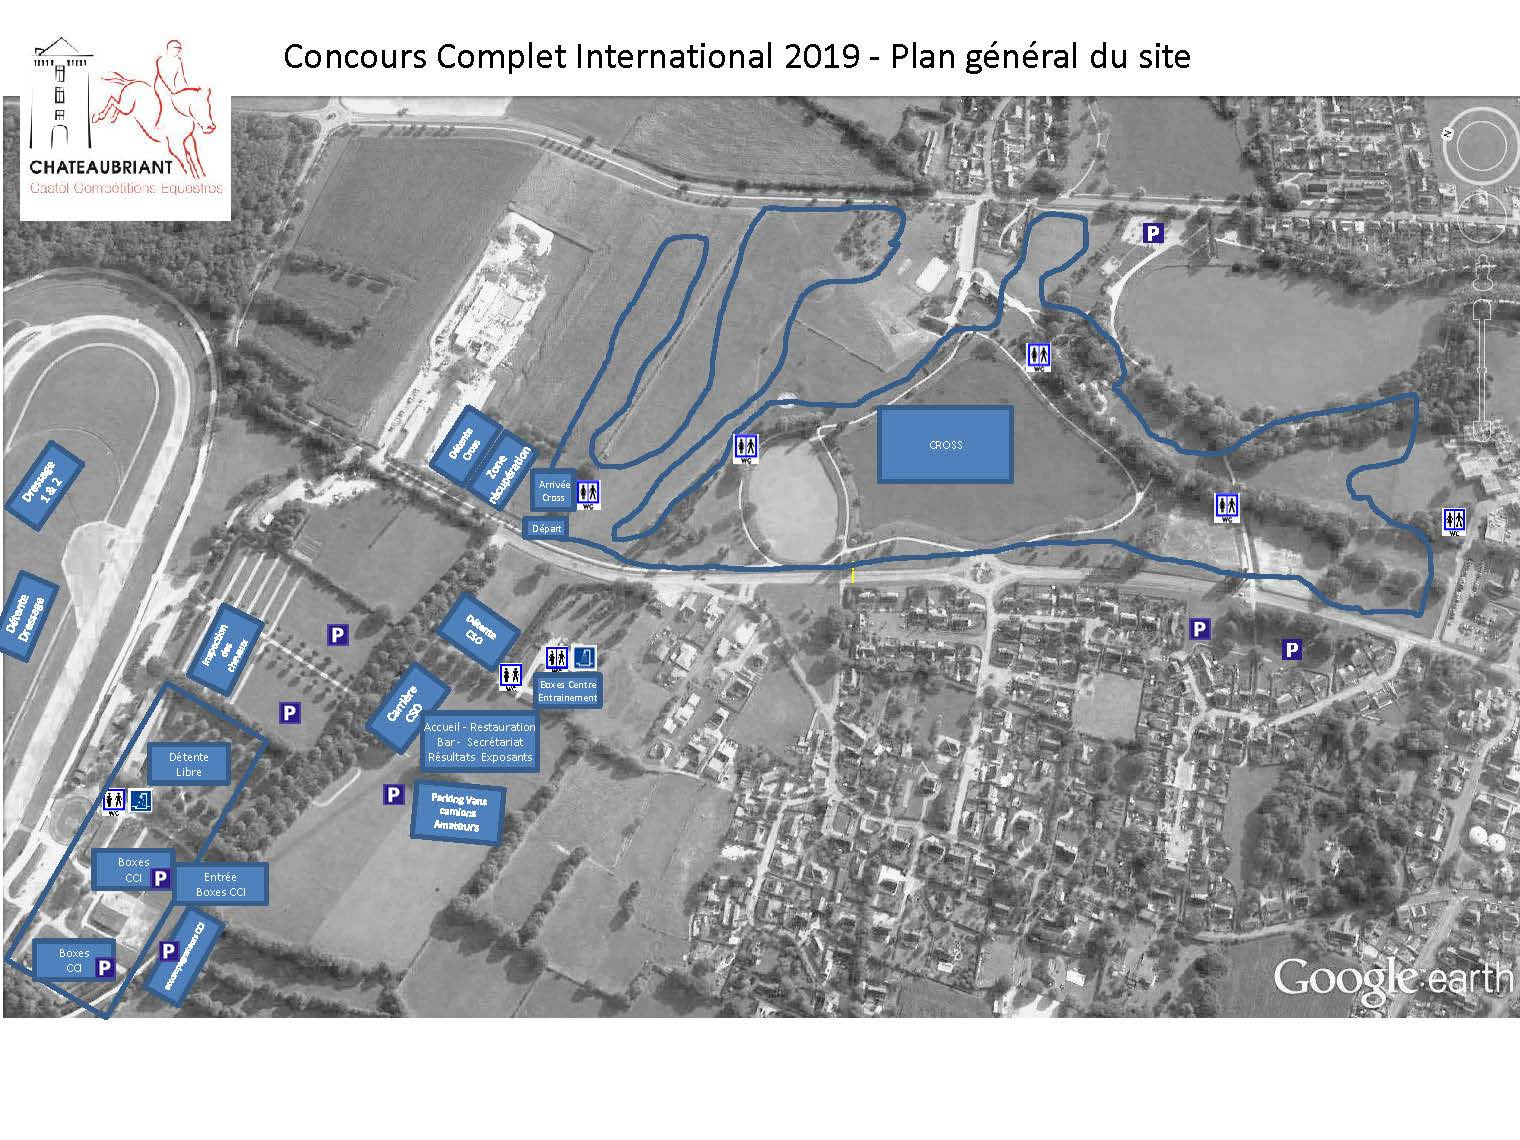 https://www.cce-chateaubriant.fr/wp-content/uploads/sites/2759/2019/07/plan_site_concours_2019.jpg